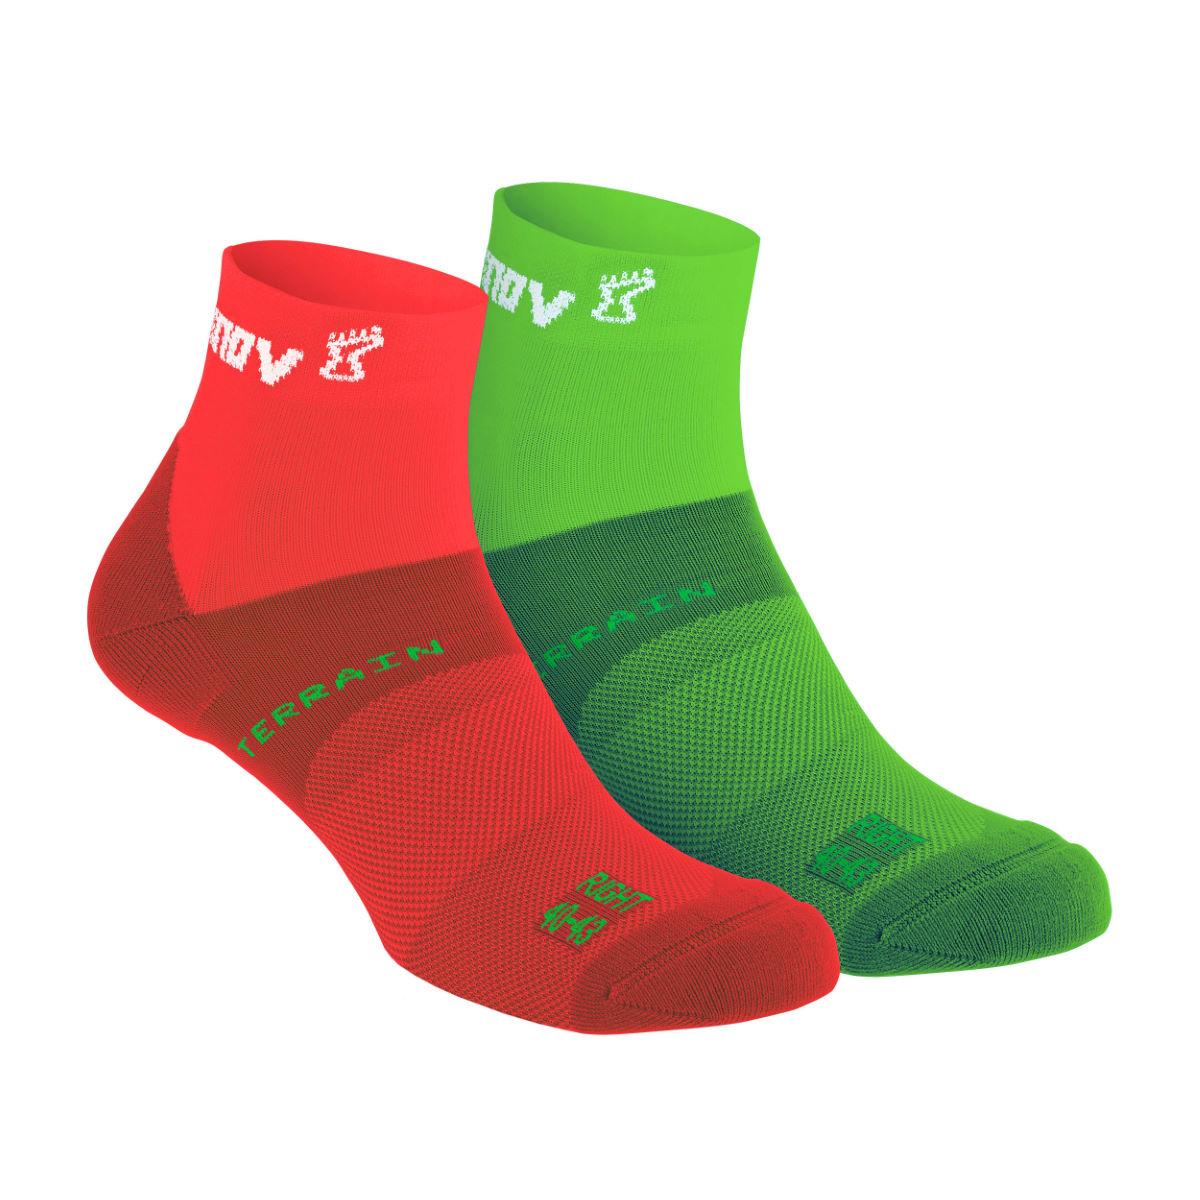 Chaussettes Inov-8 All Terrain Sock Mid (lot de 2 paires) - S Rouge